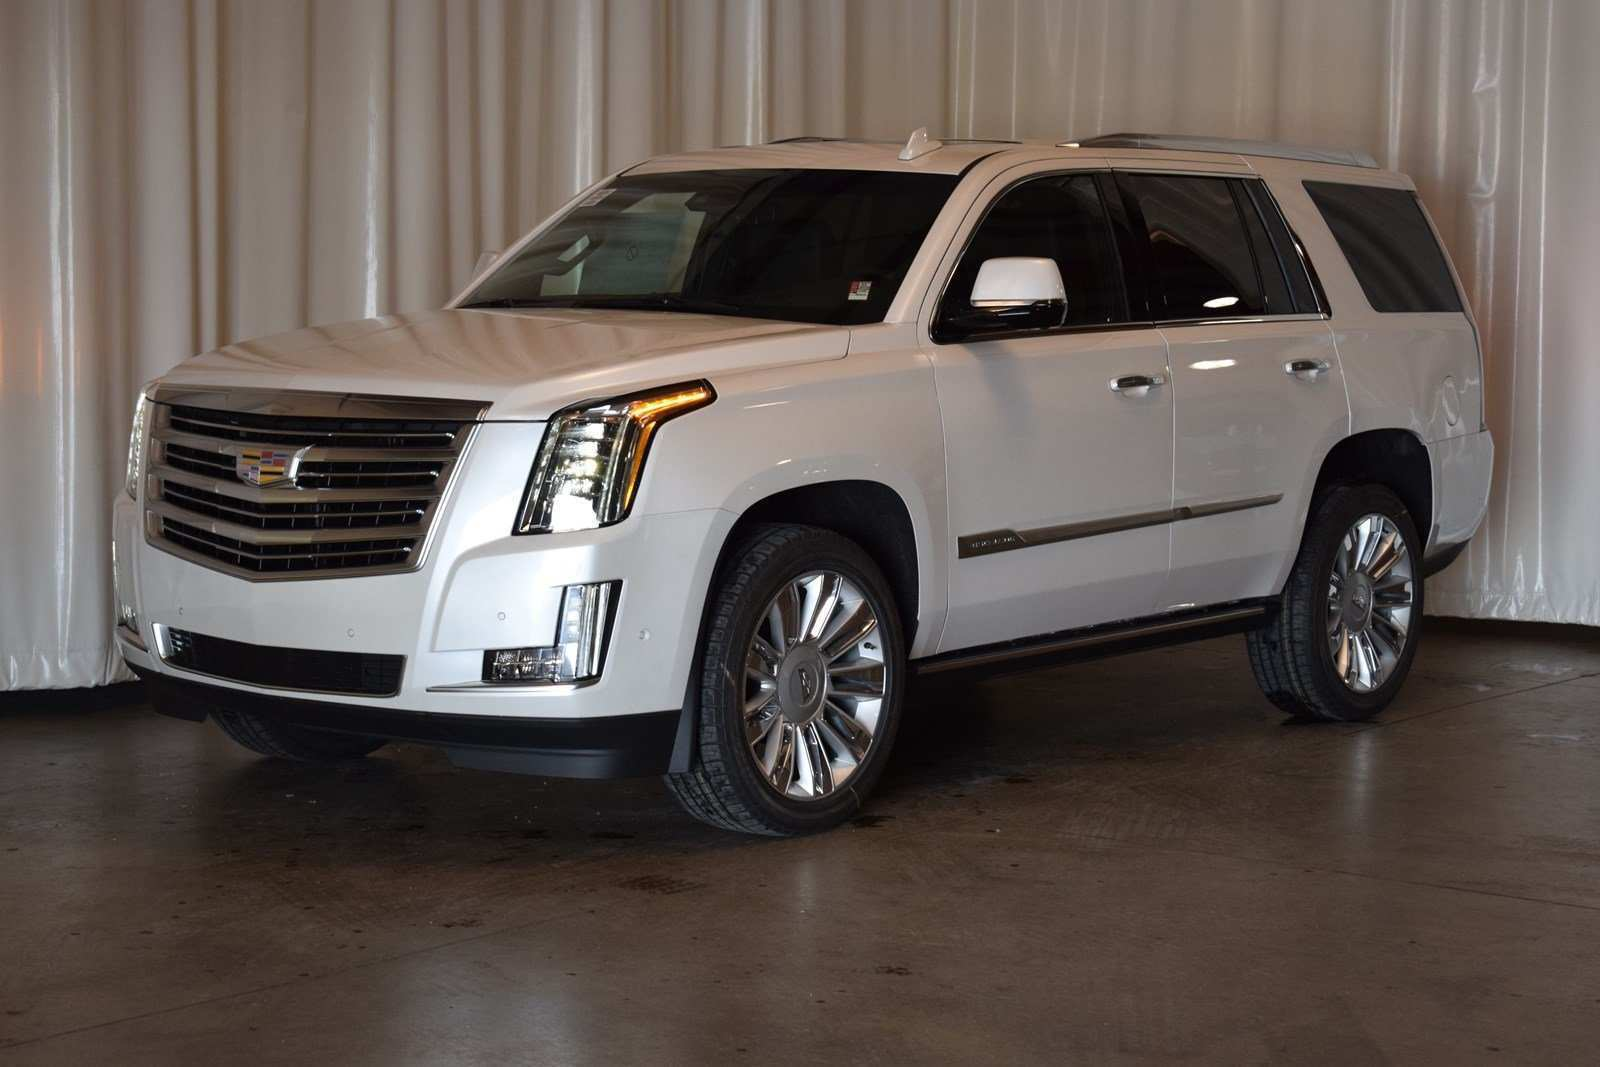 52 The 2019 Cadillac Escalade Platinum Specs and Review for 2019 Cadillac Escalade Platinum